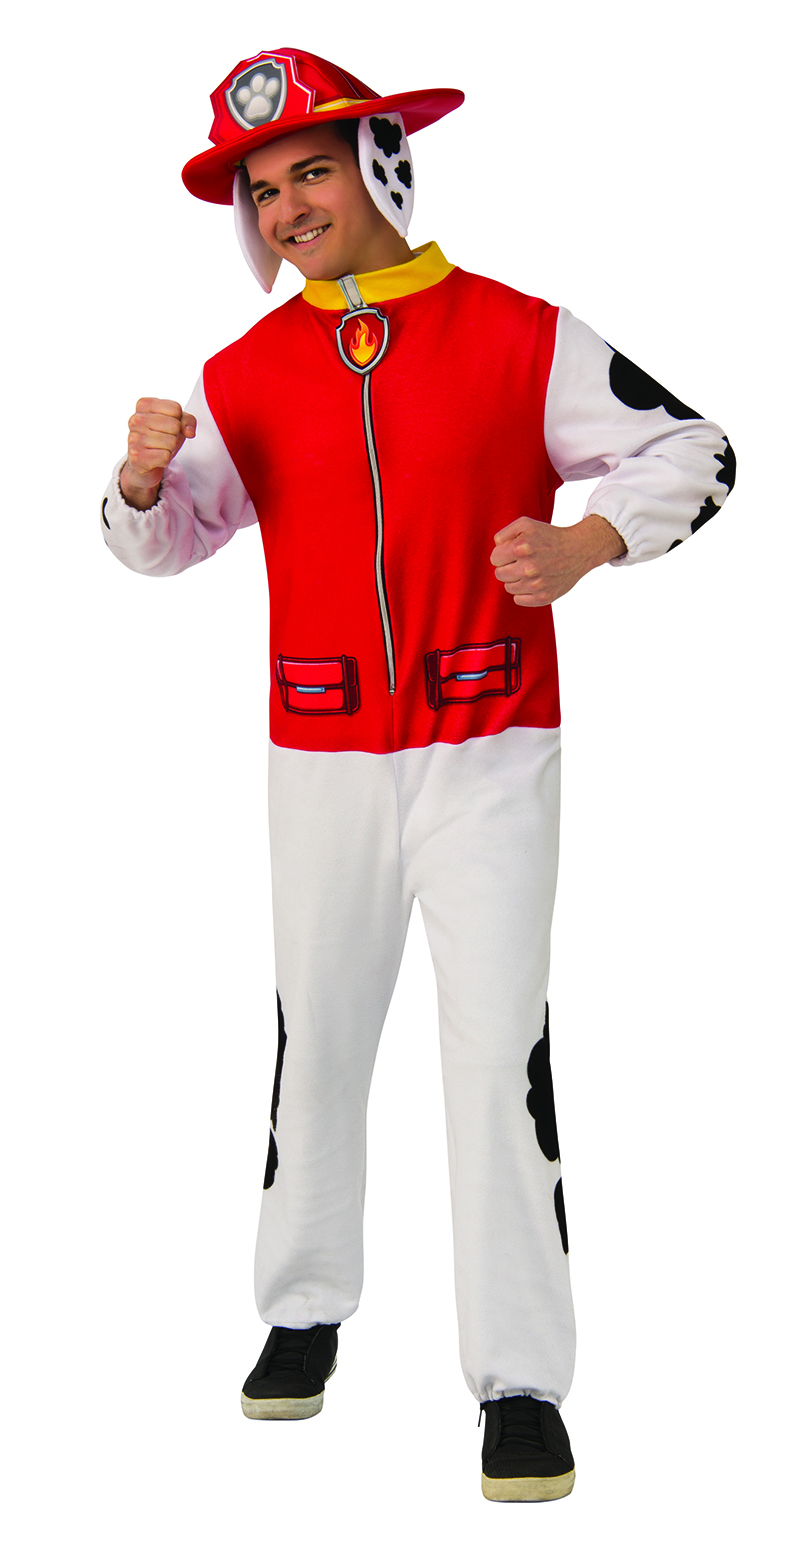 PAW PATROL -  MARSHALL COSTUME (ADULT)